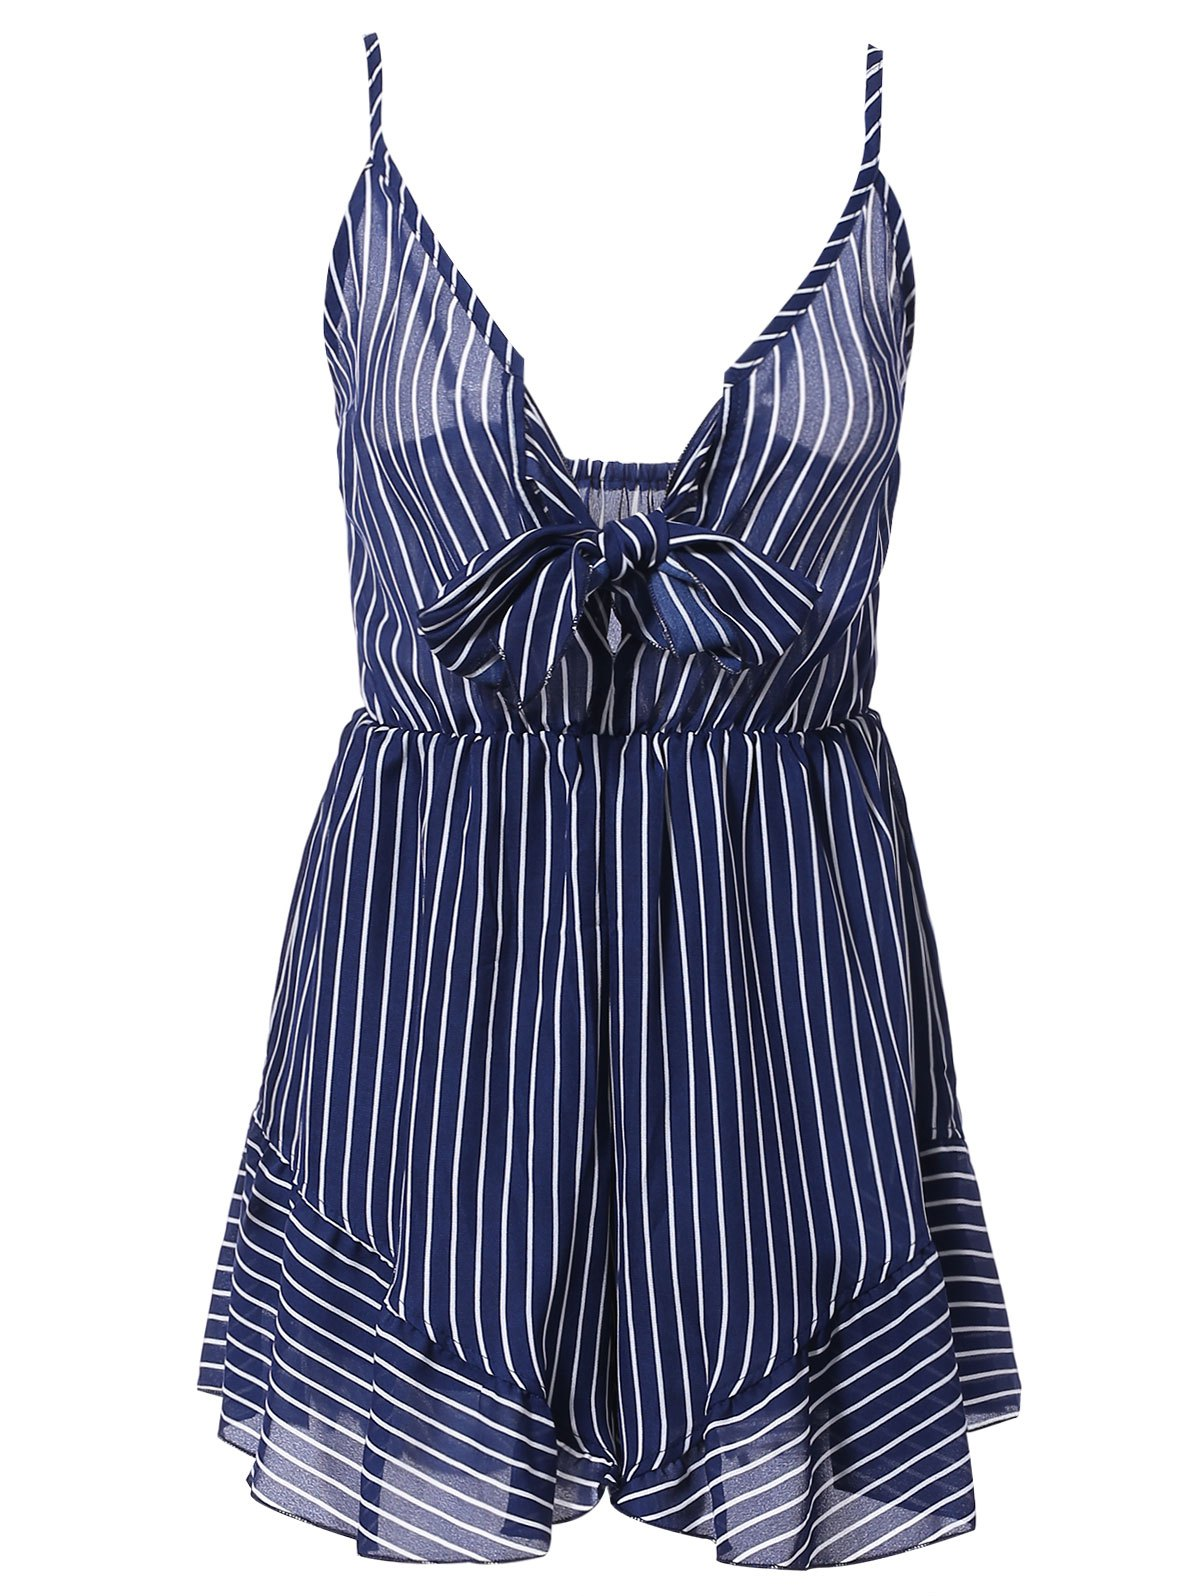 Chic Women's Plunging Neck Striped Design Flounce Romper